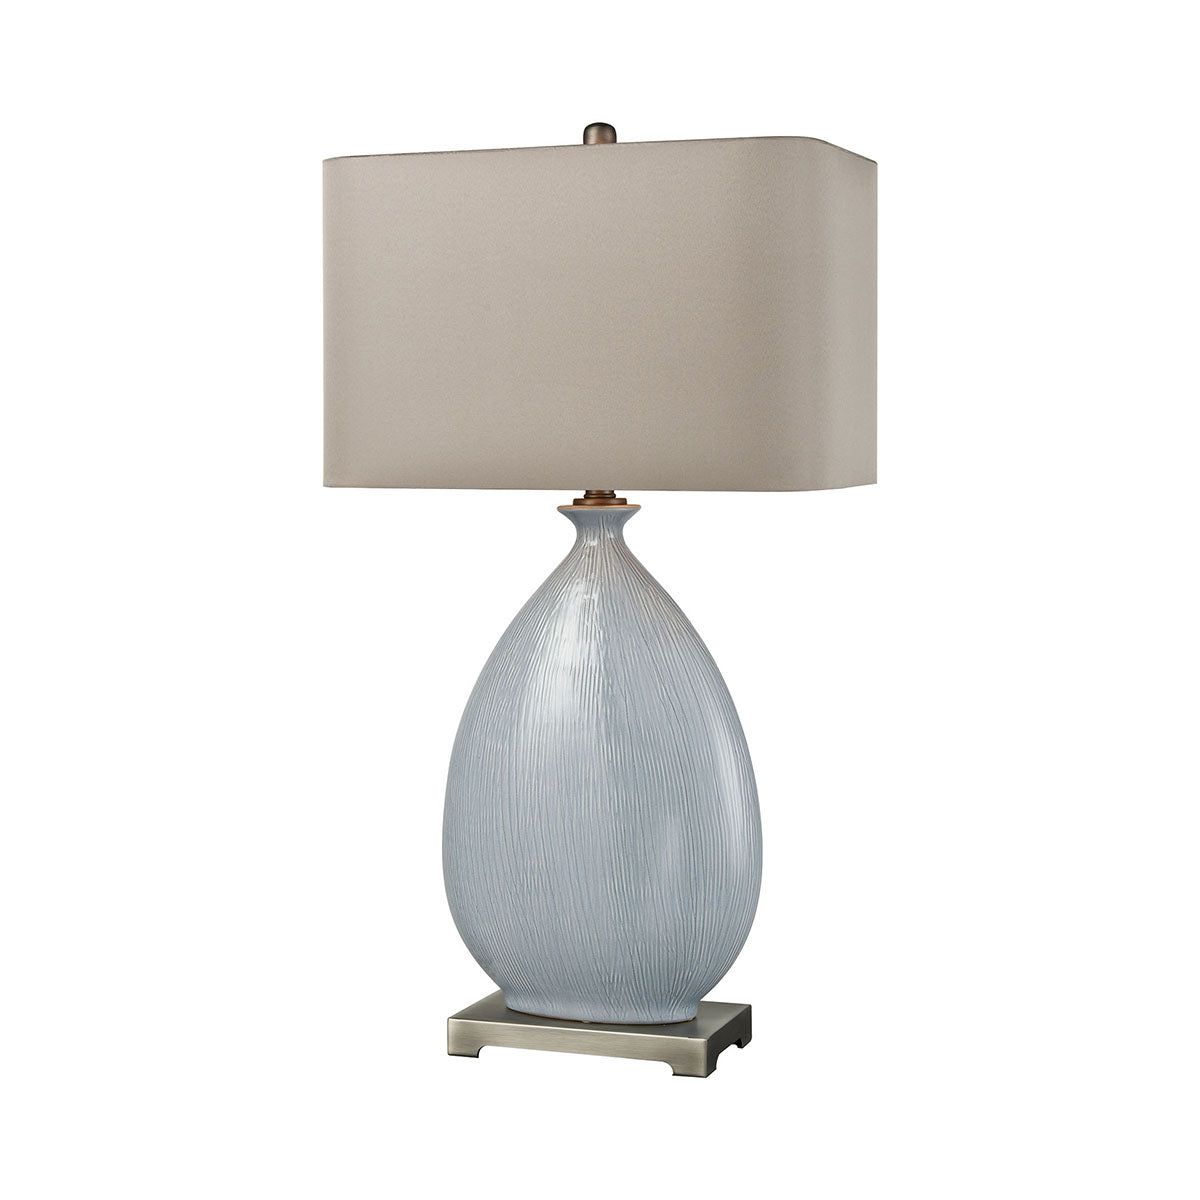 Blue Lace Table Lamp